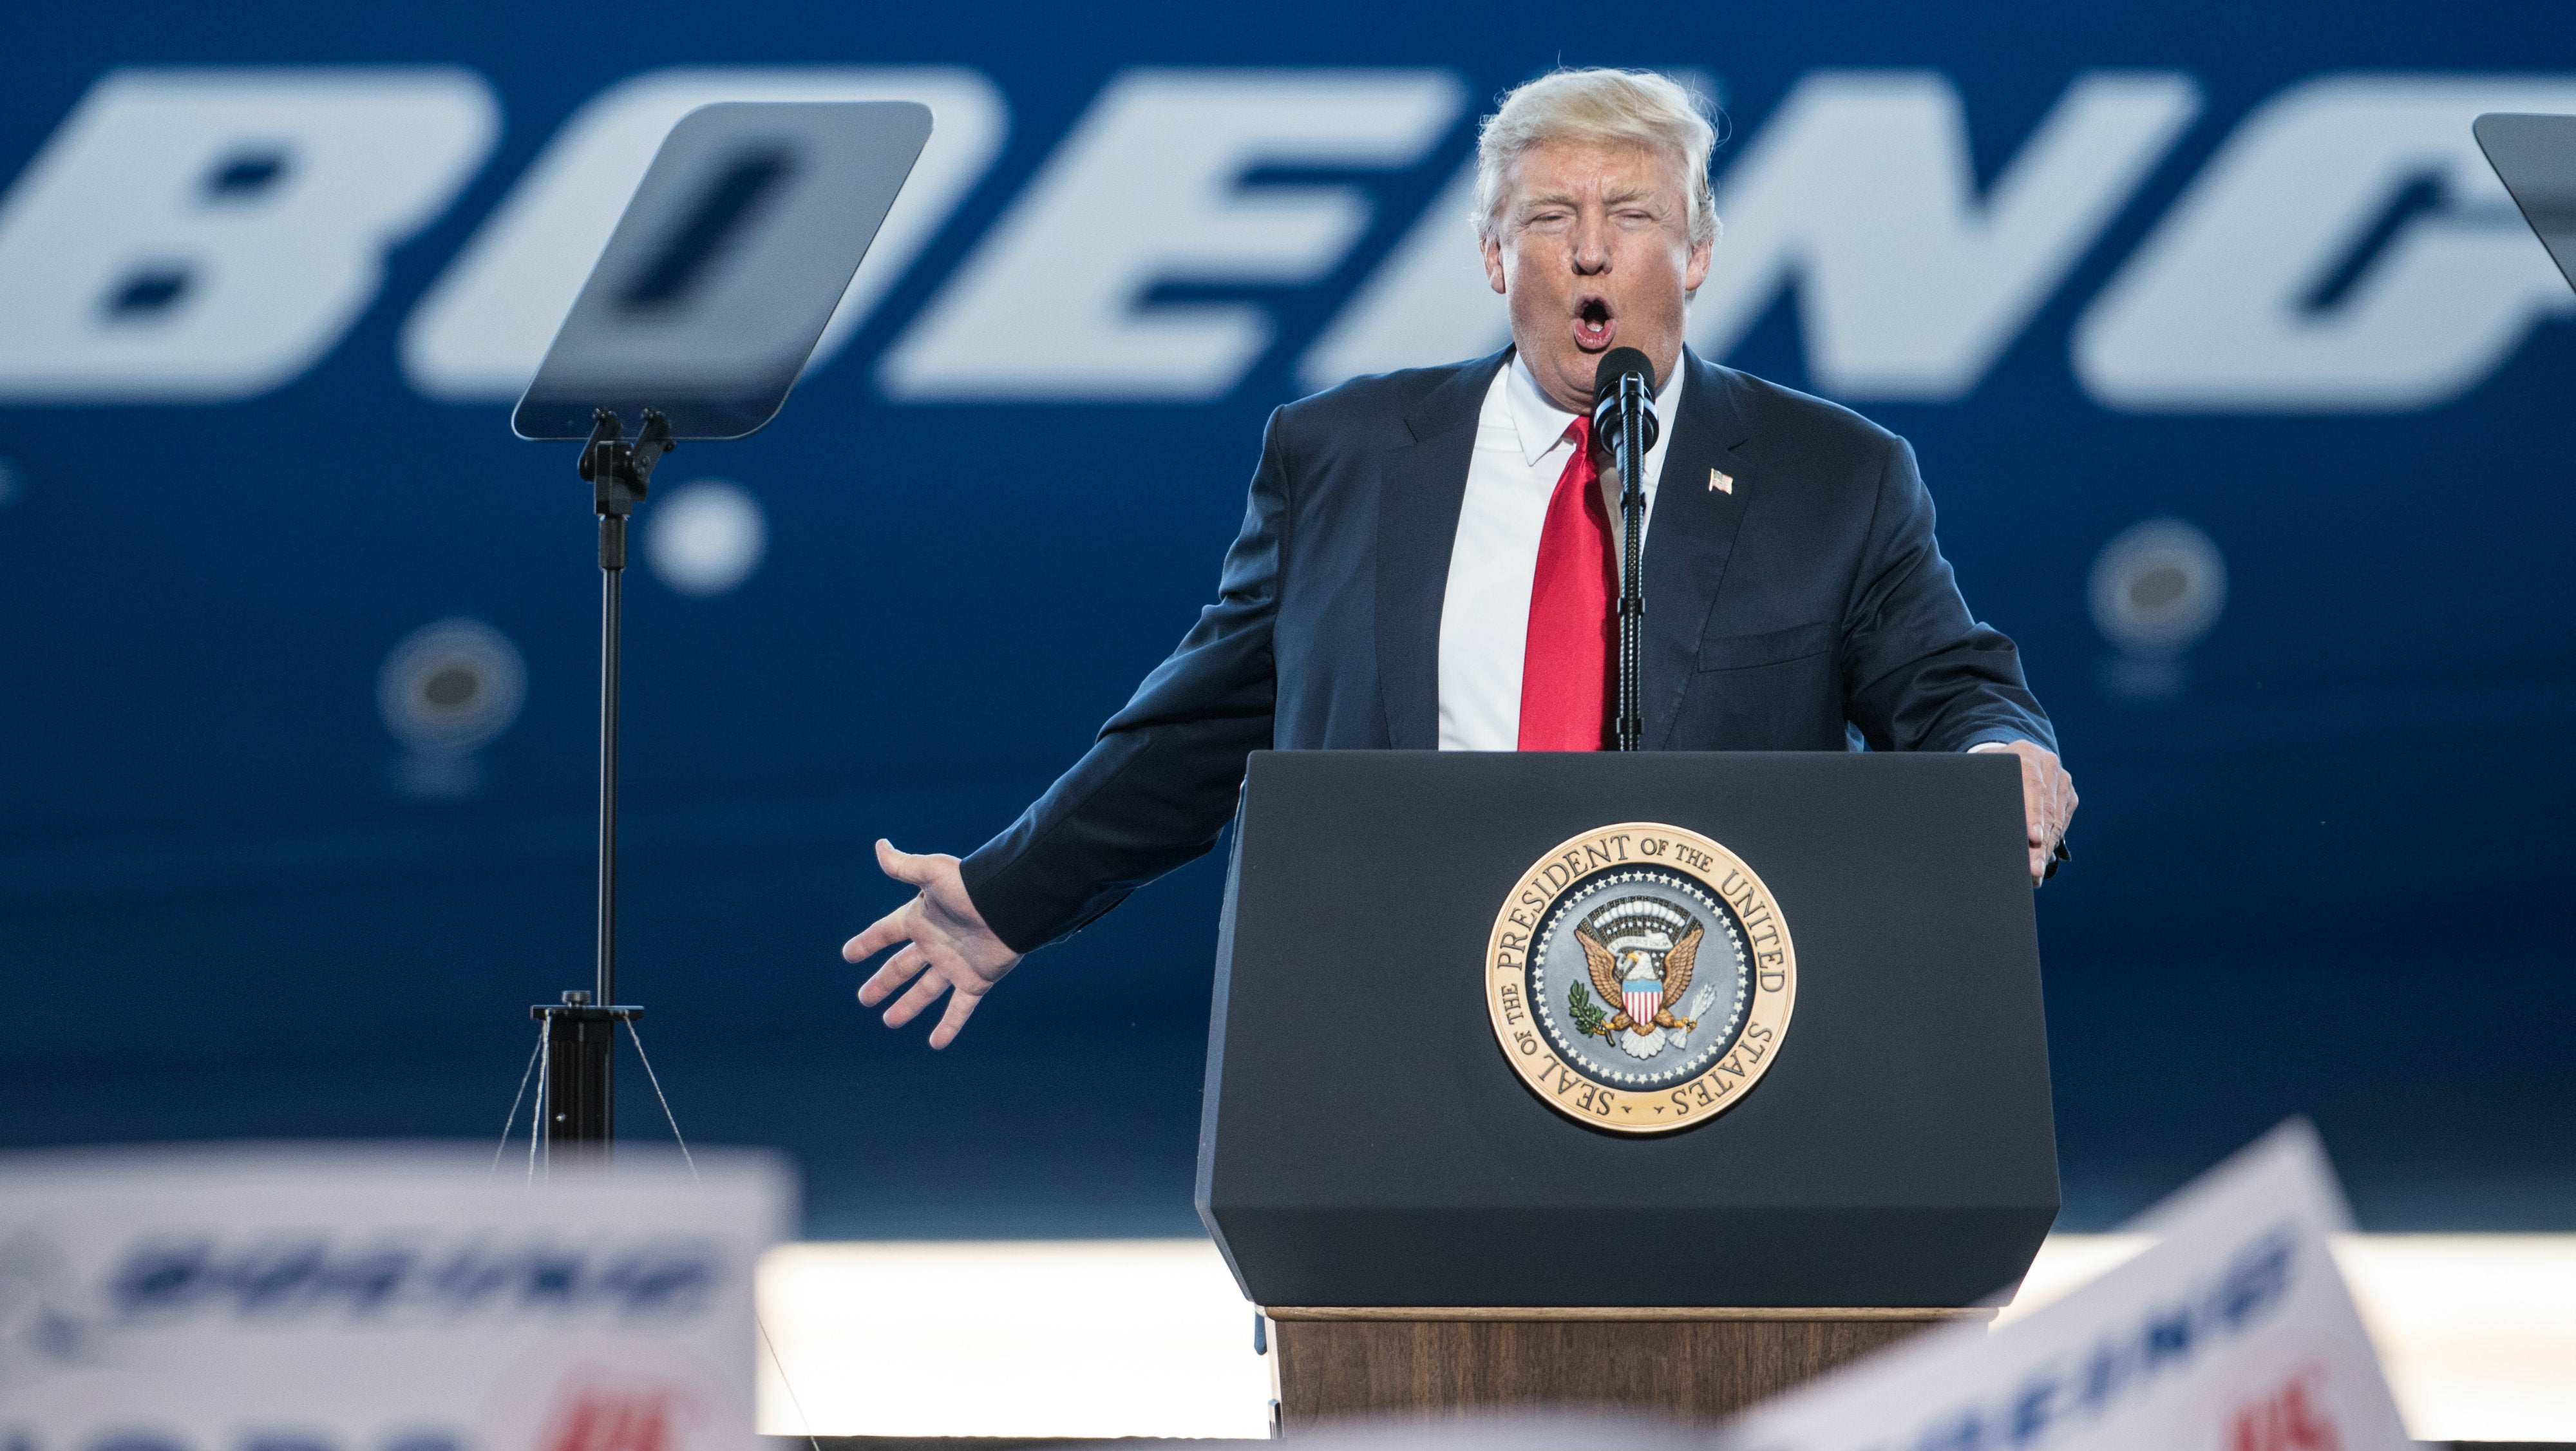 Donald Trump Praises 'Beautiful' Plane He Vowed To Never Fly On